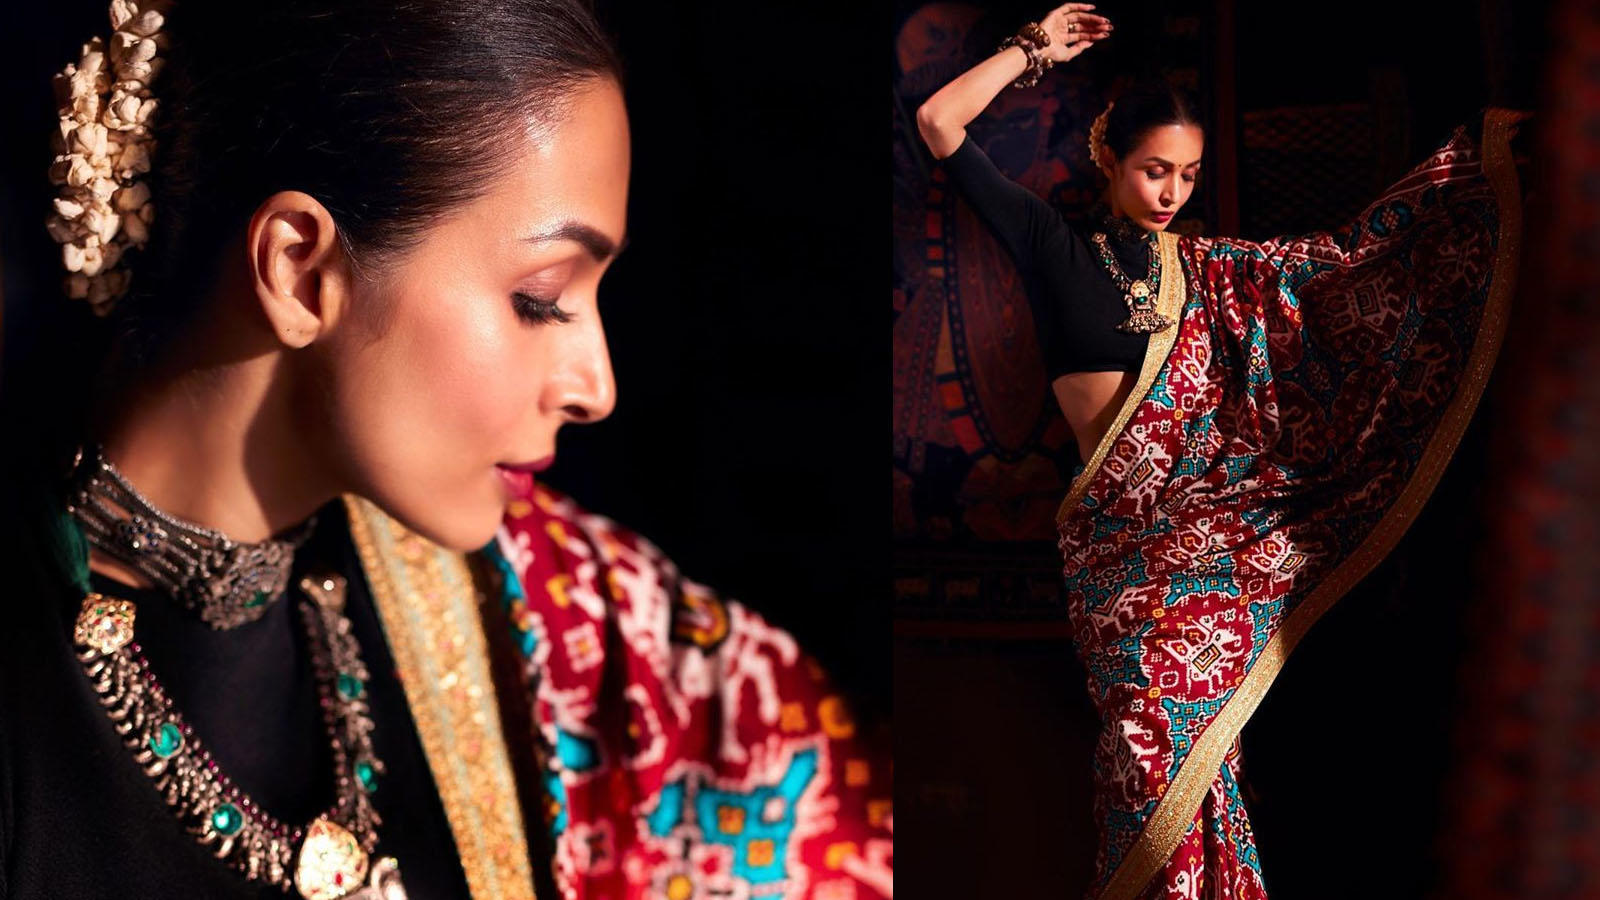 malaika-arora-opts-for-a-beautiful-multi-coloured-sari-leaving-us-all-stunned-with-her-desi-avatar